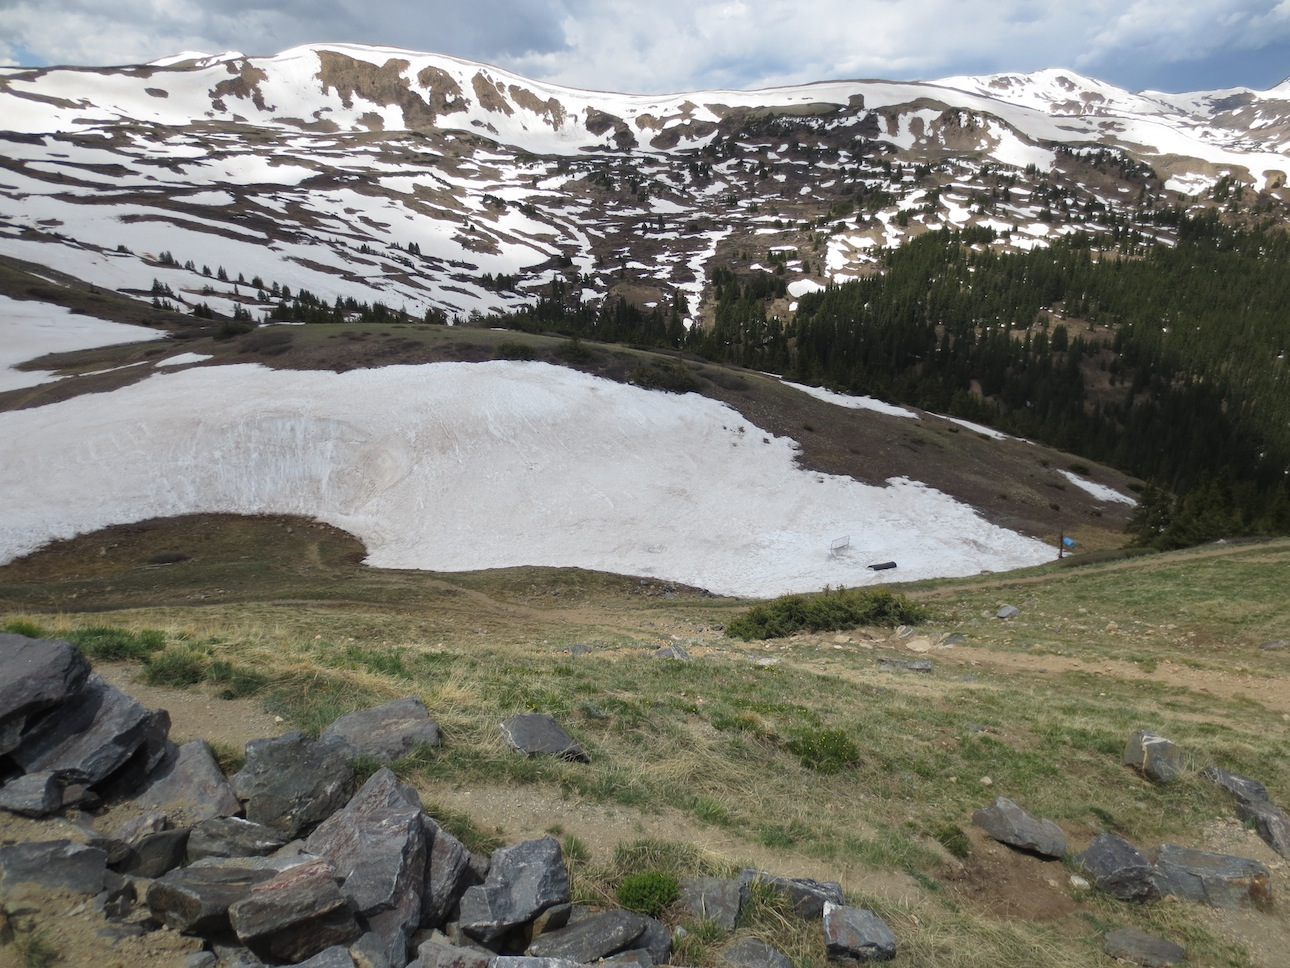 Looking down from Loveland Pass.